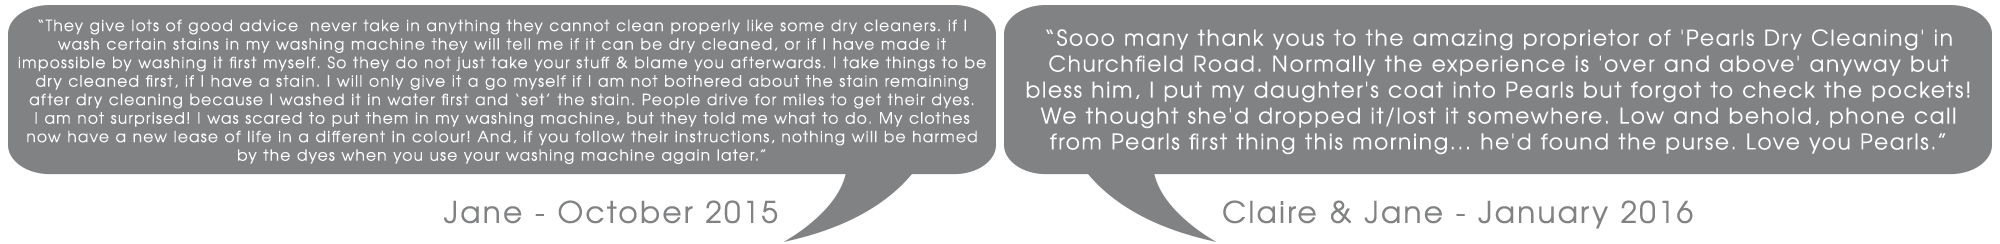 Customer Testimonials Pearls Drycleaners